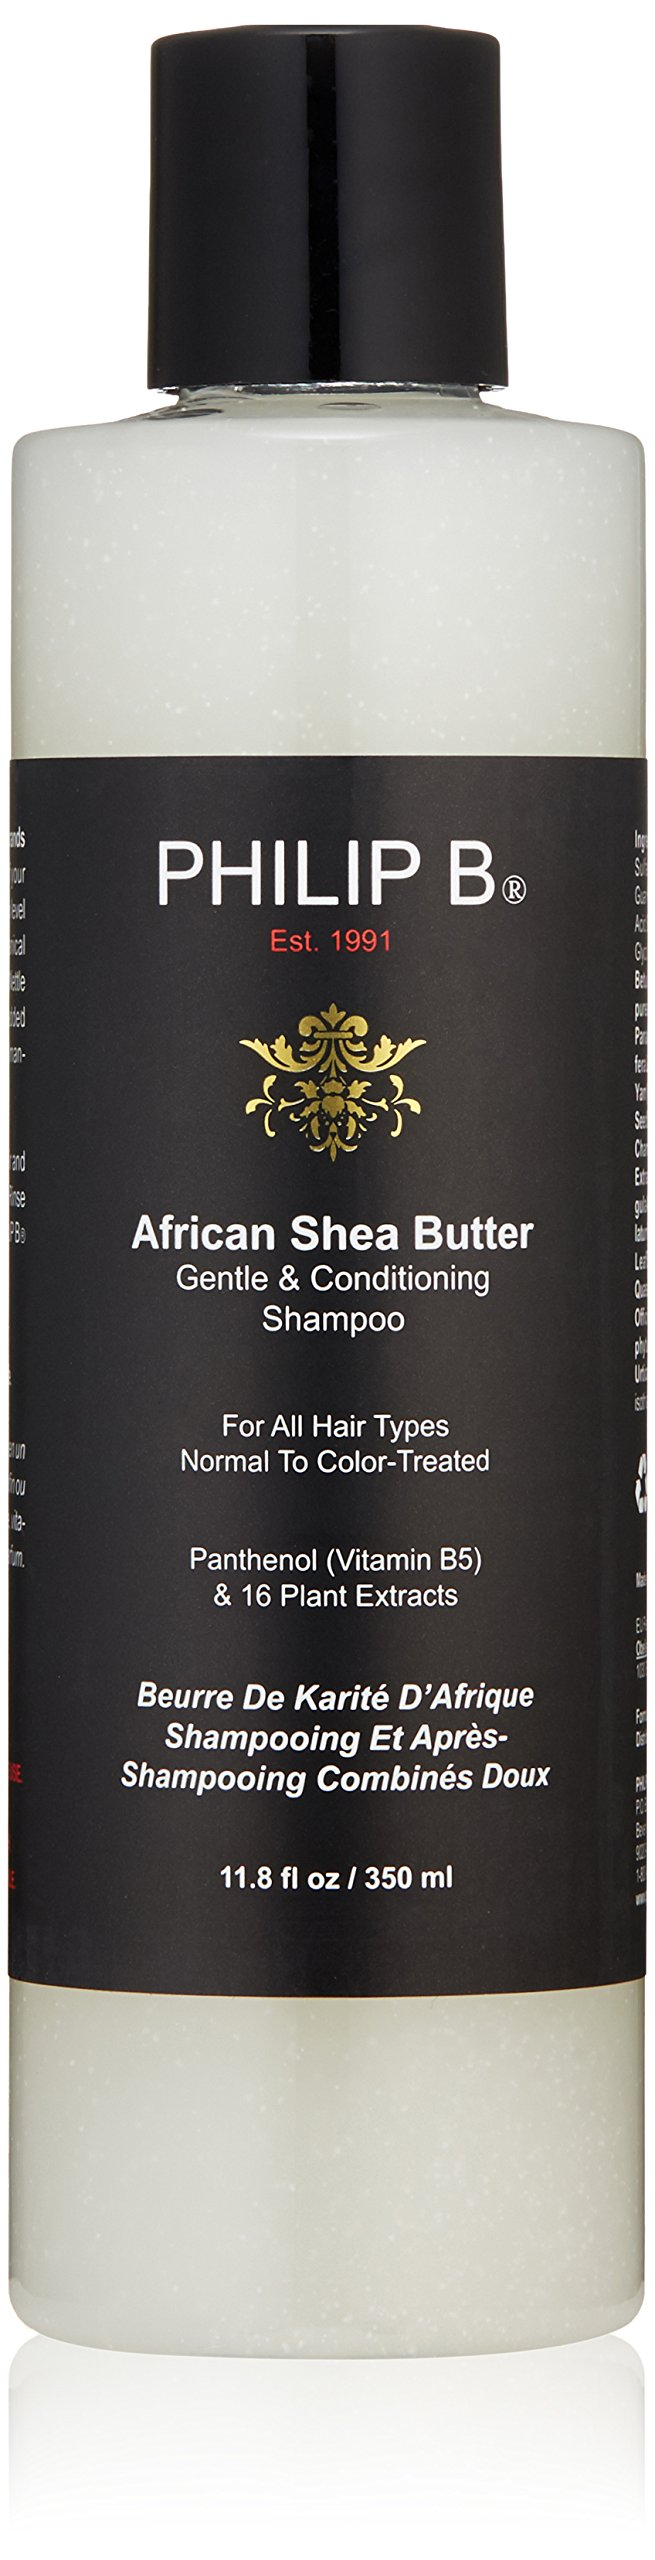 PHILIP B Gentle and Conditioning Shampoo, African Shea Butter, 11.8 fl. oz.